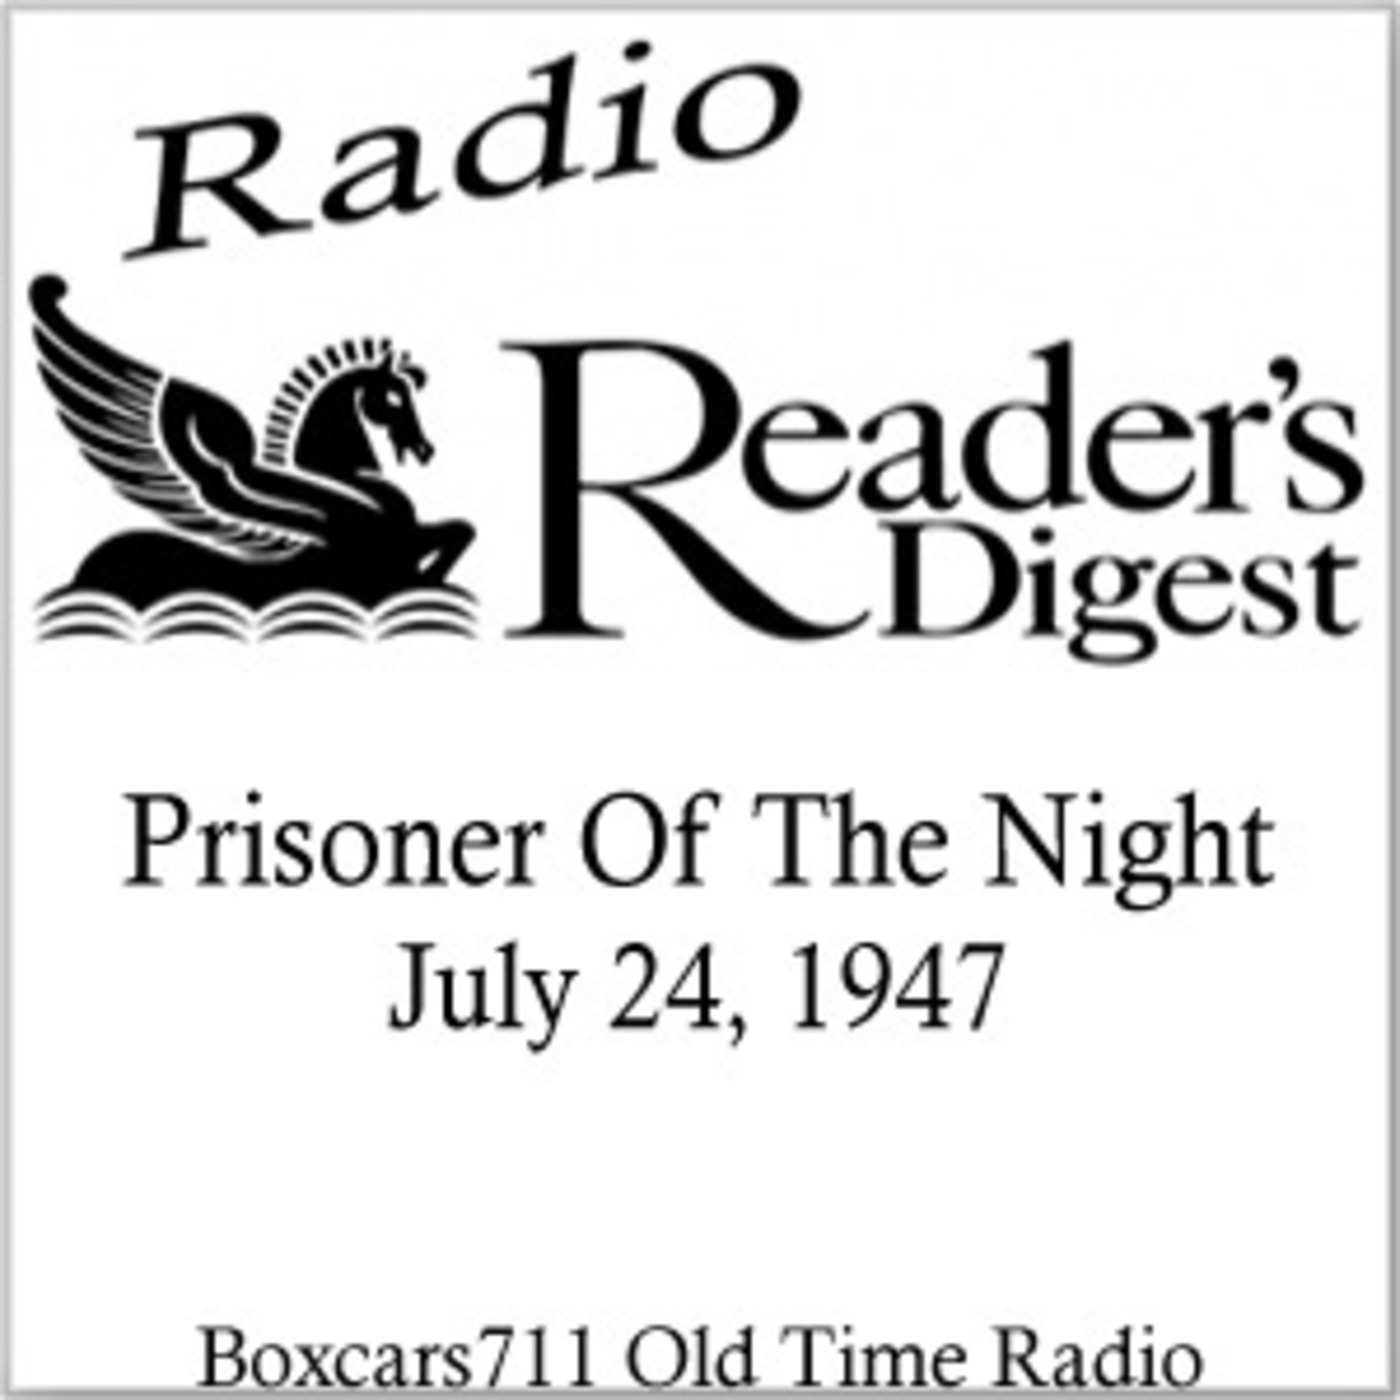 radio reader s digest prisoner of the night 07 24 47 boxcars711 Current Cars the final radio reader s digest show was broadcast on 3rd june 1948 with the now vacant radio slot being filled the following week with the launch